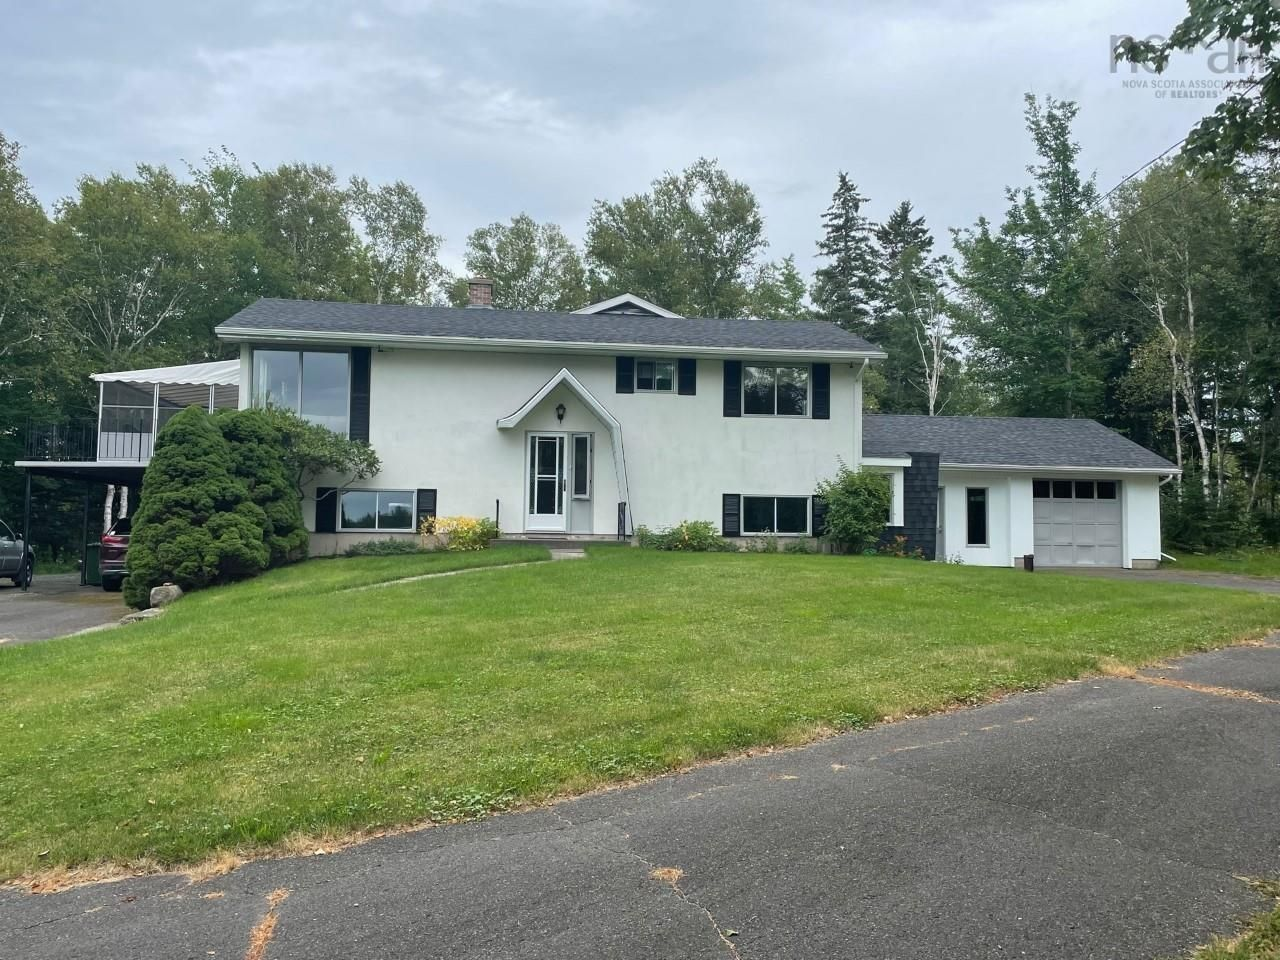 Main Photo: 267 Sinclair Road in Chance Harbour: 108-Rural Pictou County Residential for sale (Northern Region)  : MLS®# 202121657